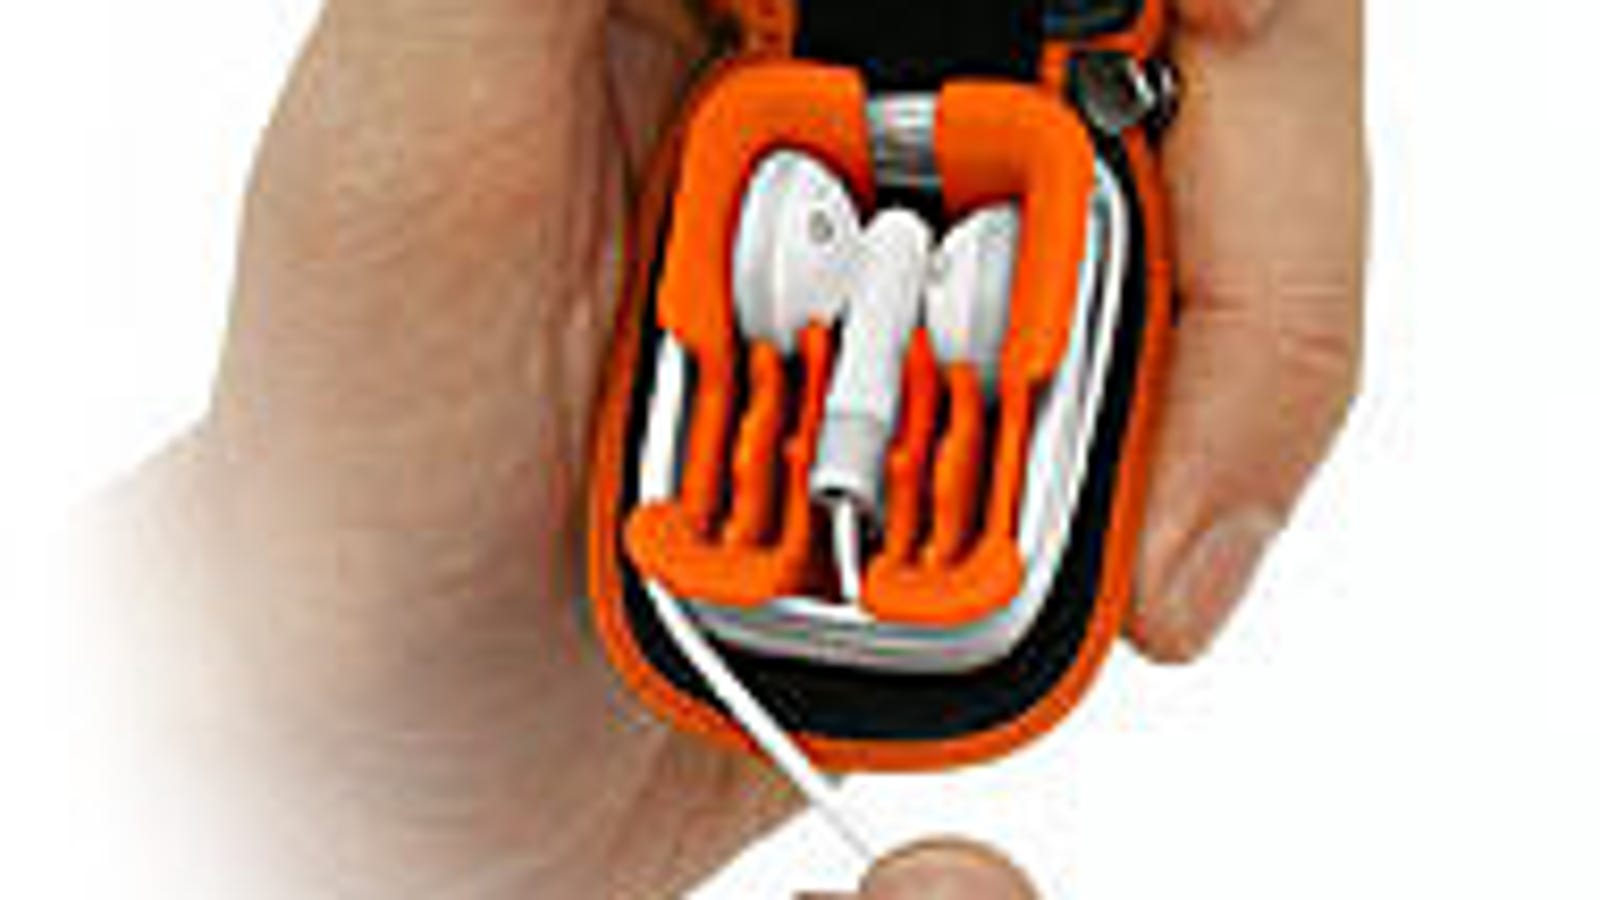 Ear buds unconvestion - ear buds bogass